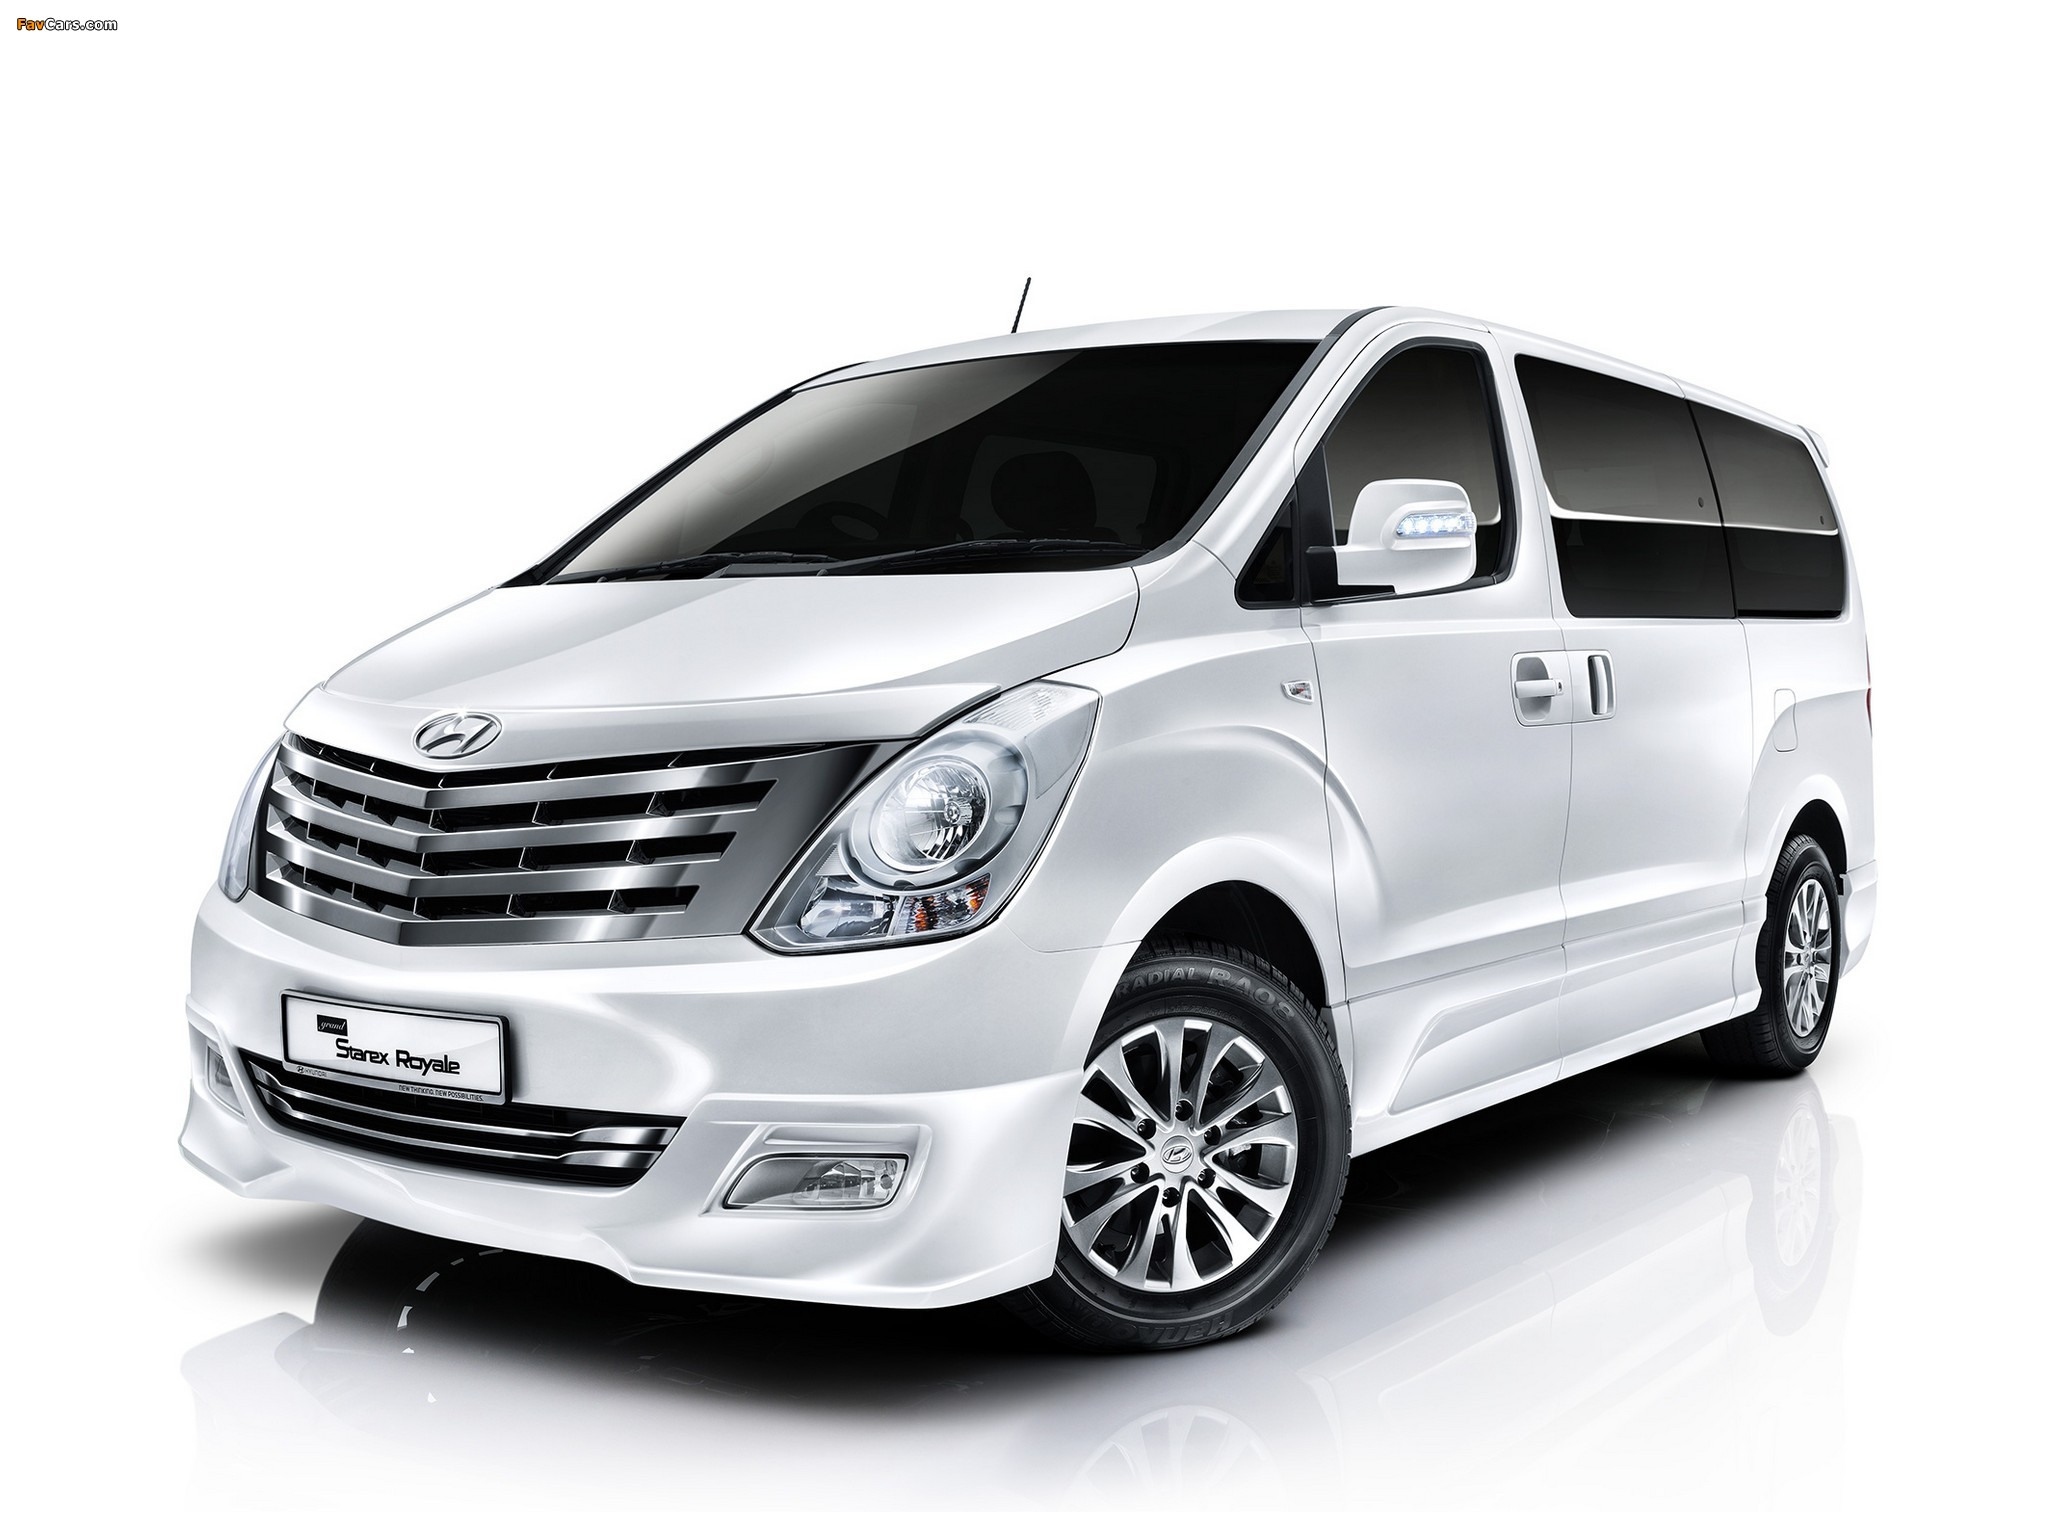 Hyundai Grand Starex Royale 2011 images (2048 x 1536)